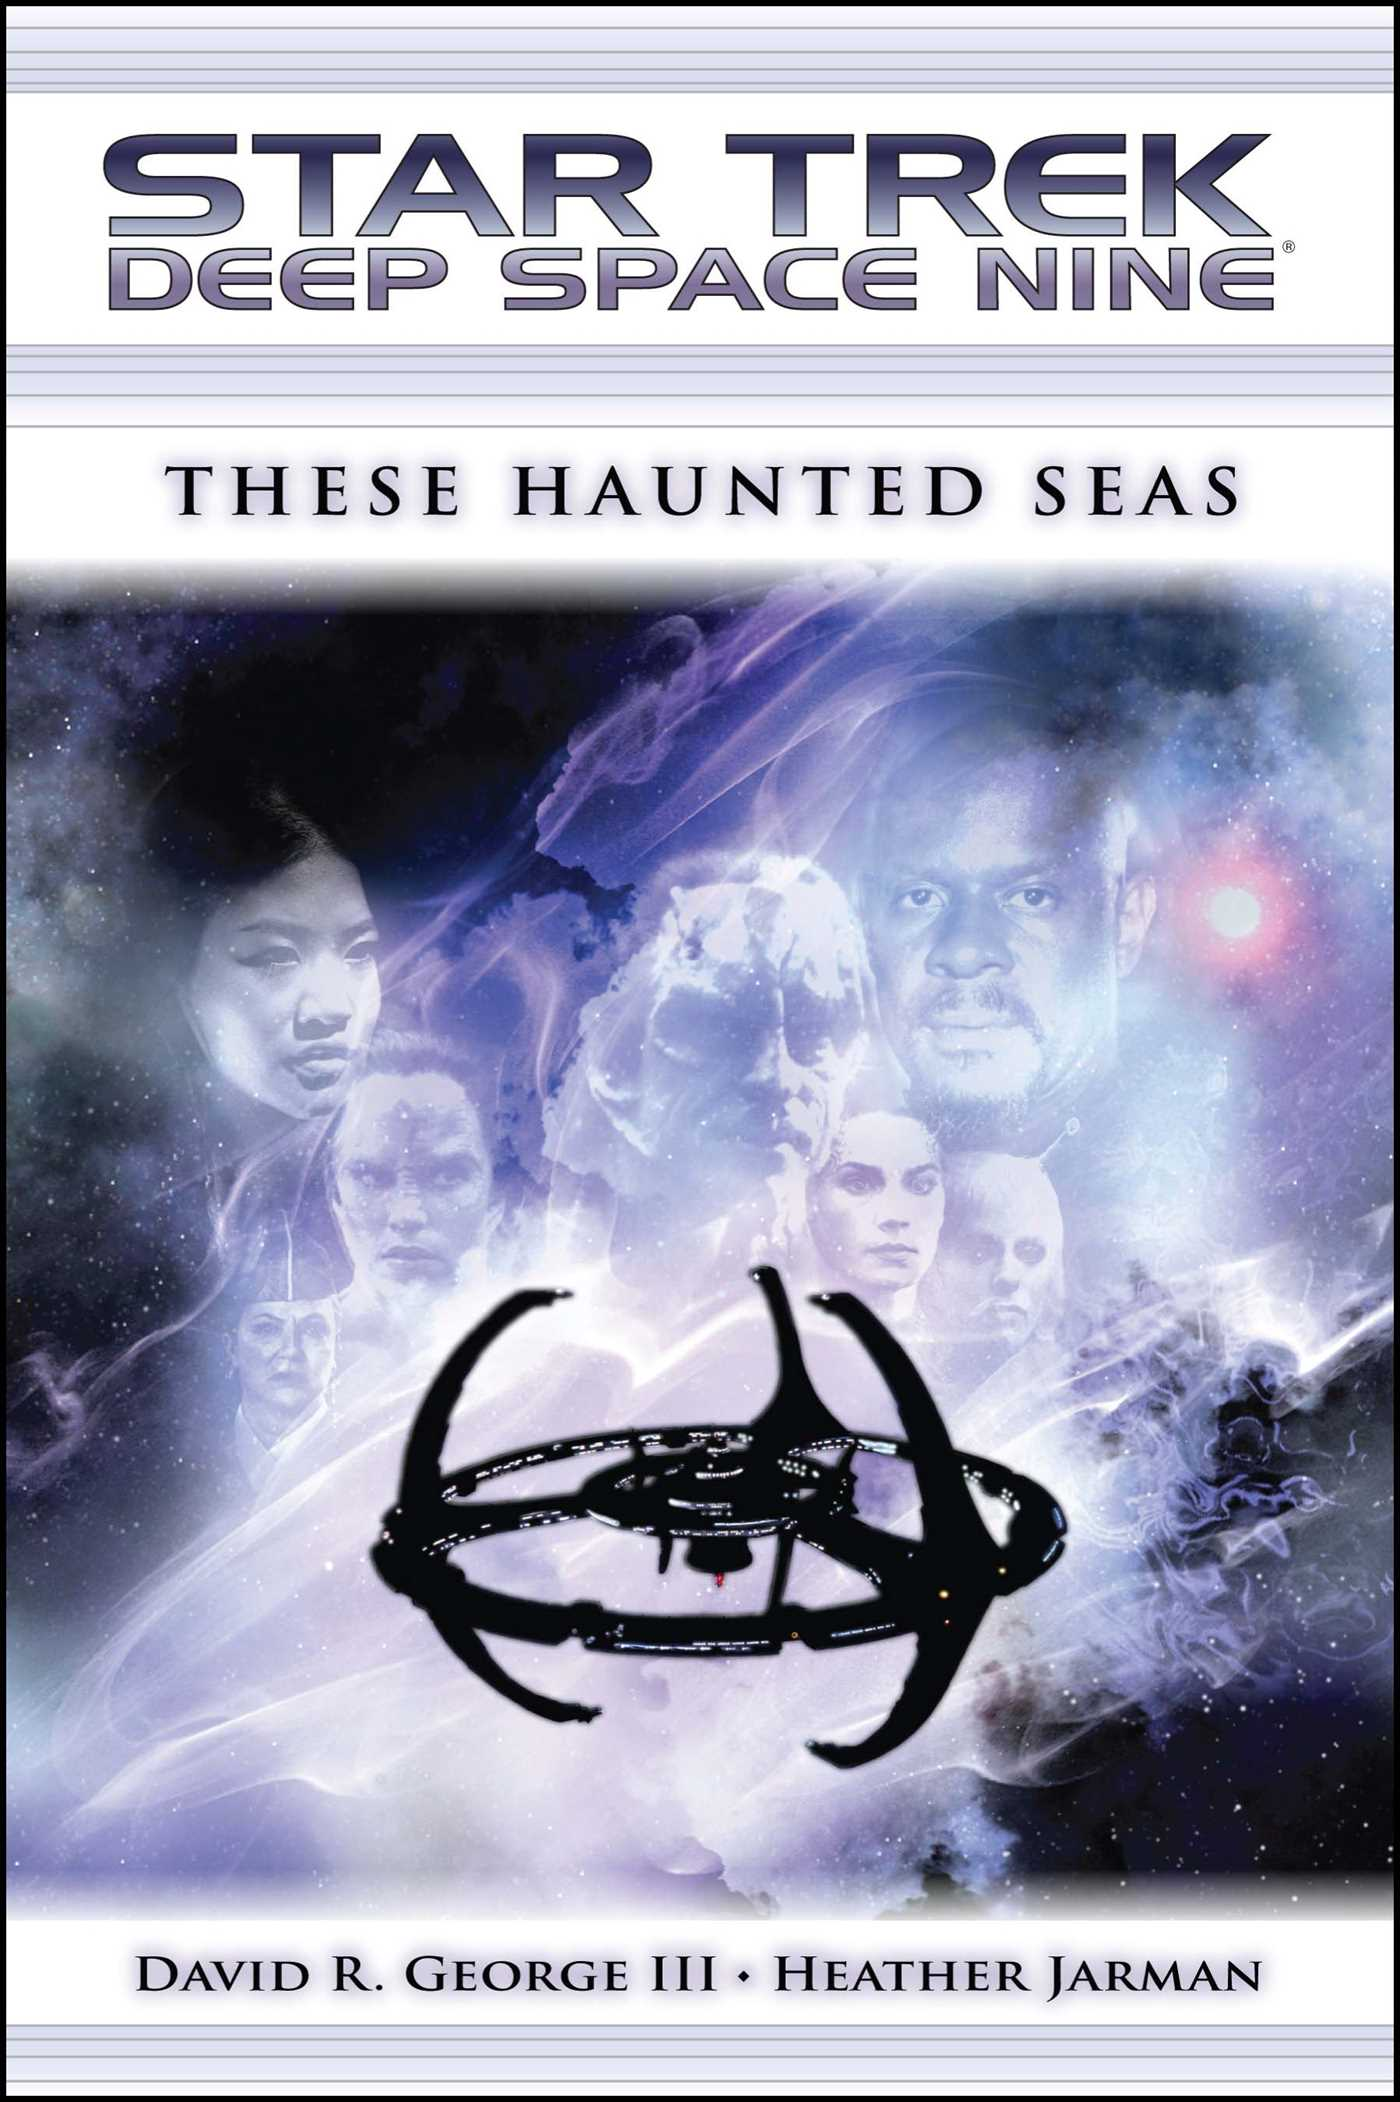 Star trek deep space nine these haunted seas 9781416556398 hr